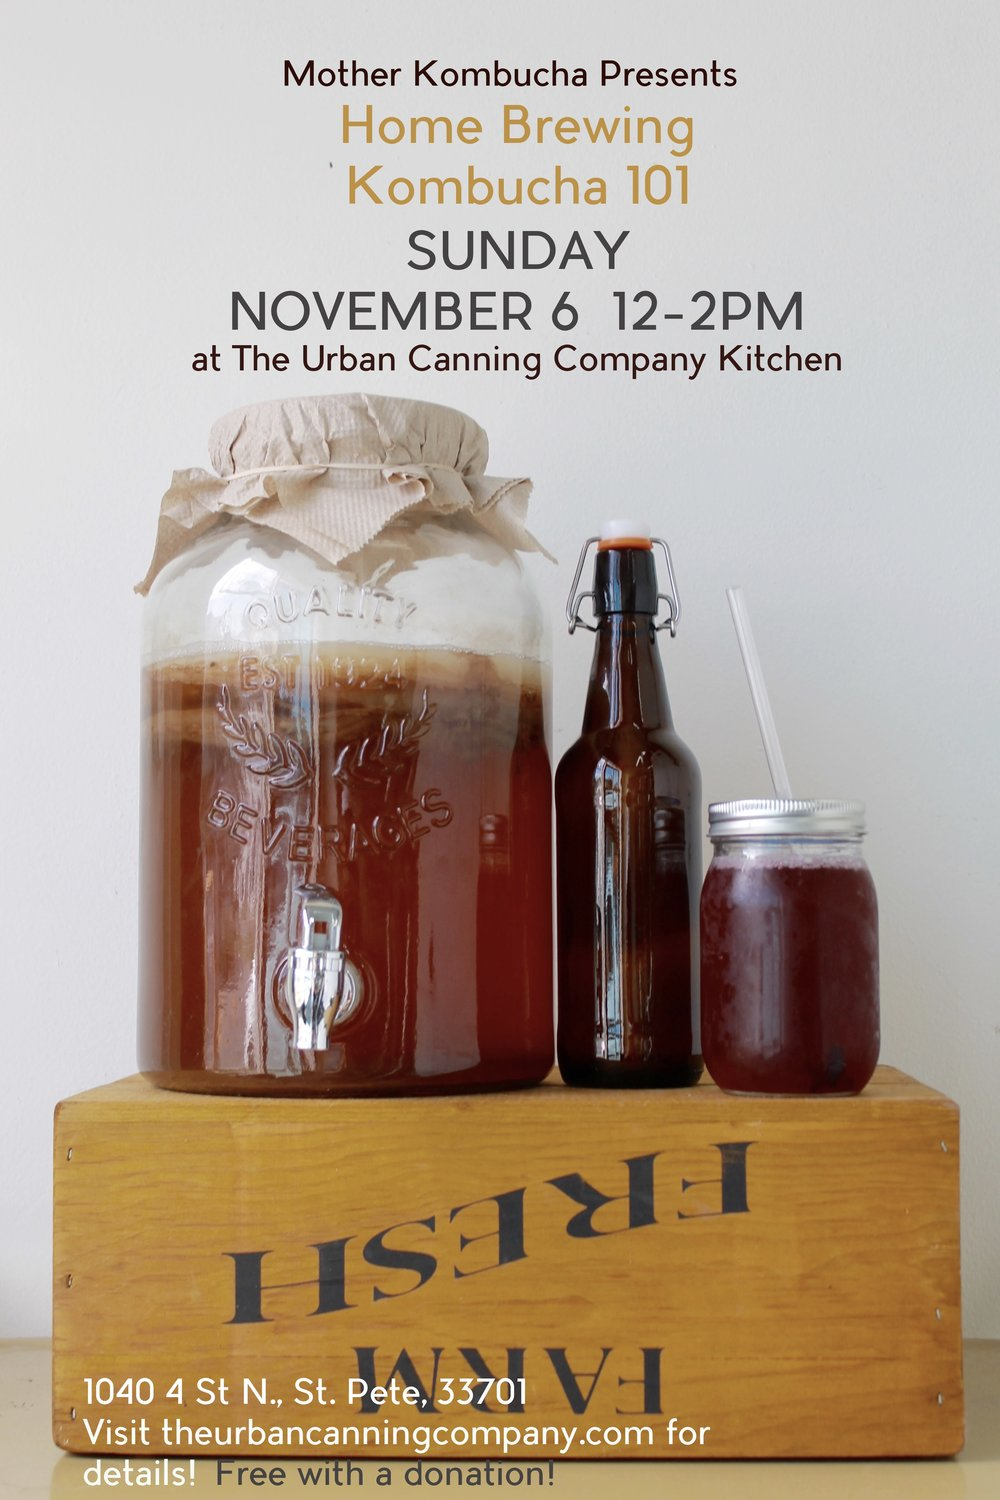 Come join us for this lecture taught by Josh Rumschlag, co -founder ofMother Kombucha! He will be speaking about safe practices for at home brewing, the history of kombucha, how tos, and tips for creating delicious flavor profiles!  This class is free with a donation don't so forget to bring cash! You'll also have to chance to purchase kombucha starter kits from Mother Kombucha!